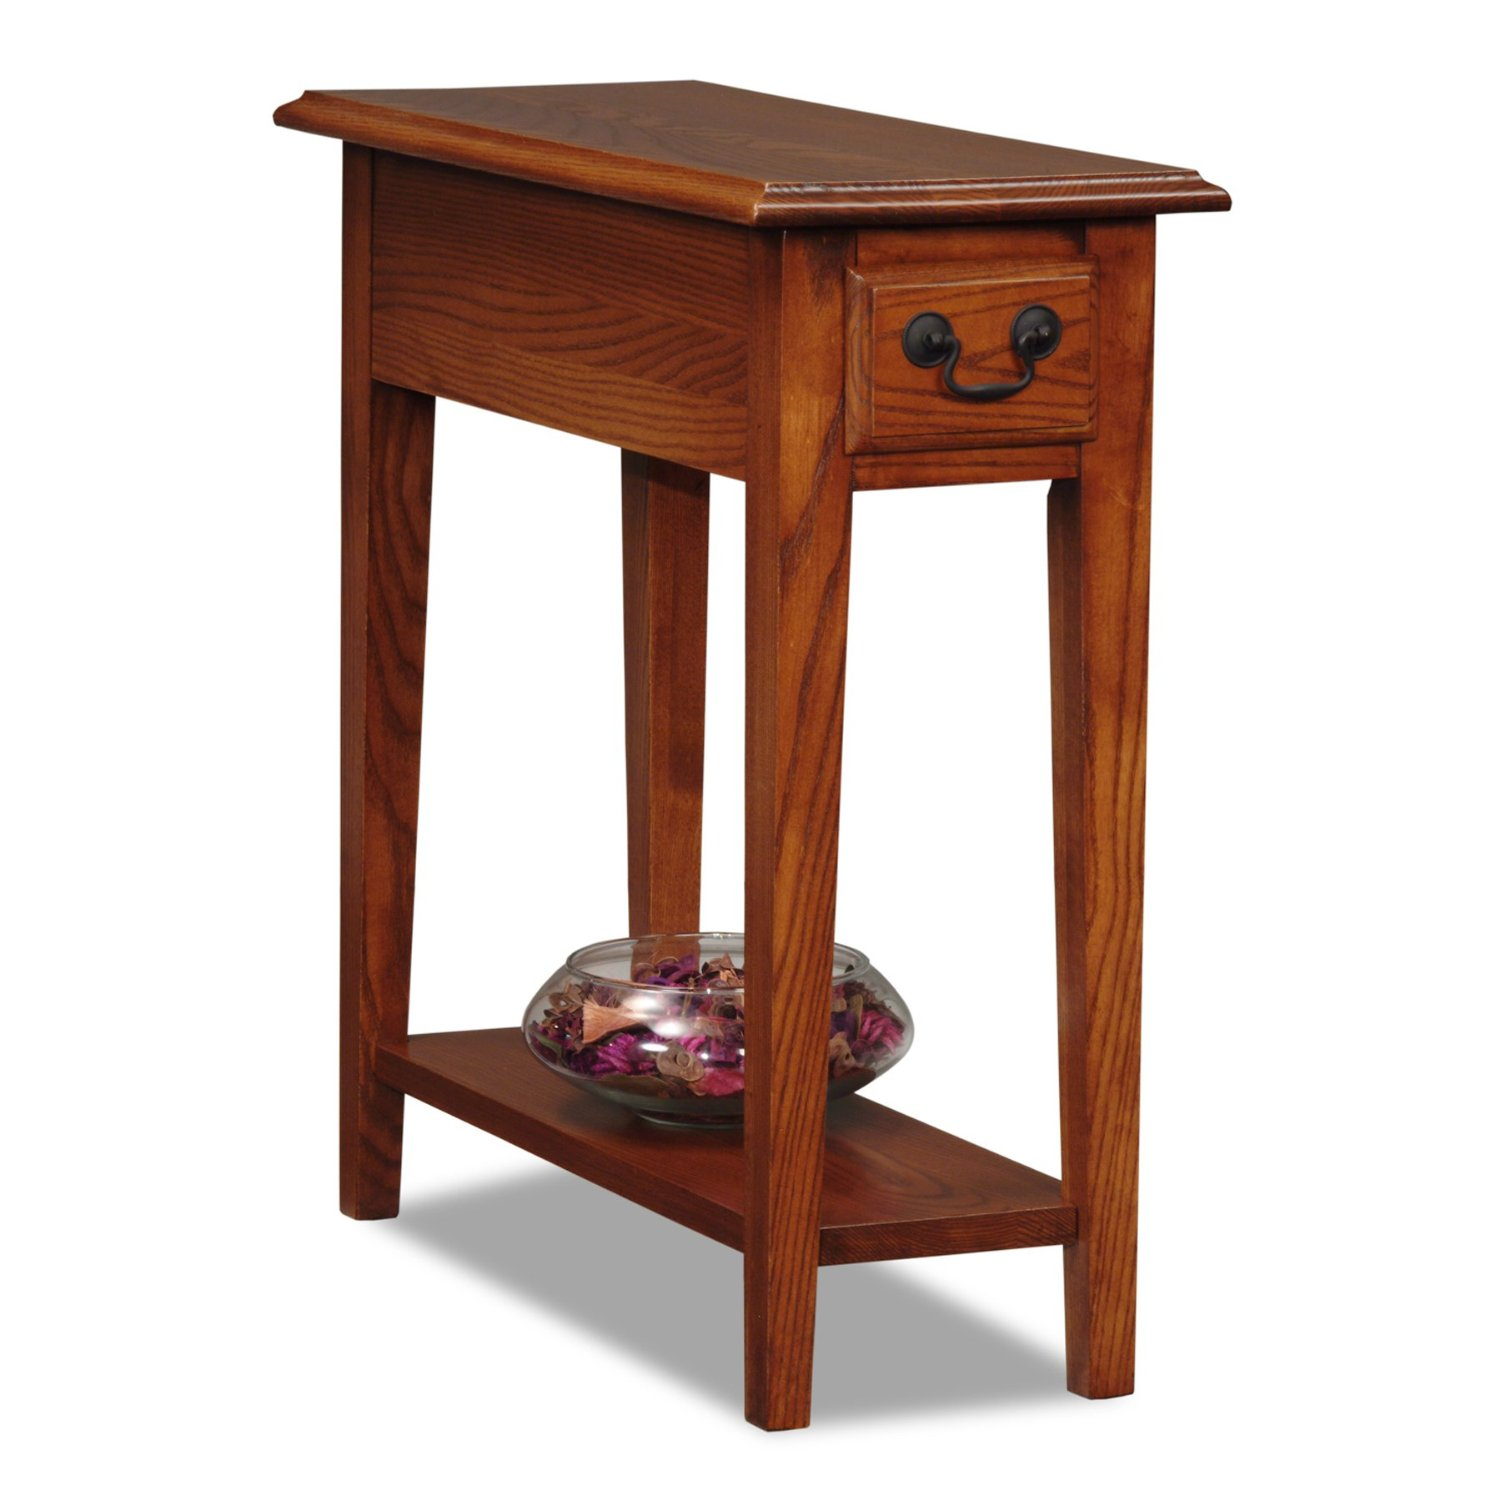 oak end tables with drawers home furniture design oval accent table small black wood drop leaf outdoor rain drum silver mirror cool glass contemporary target chair covers antique